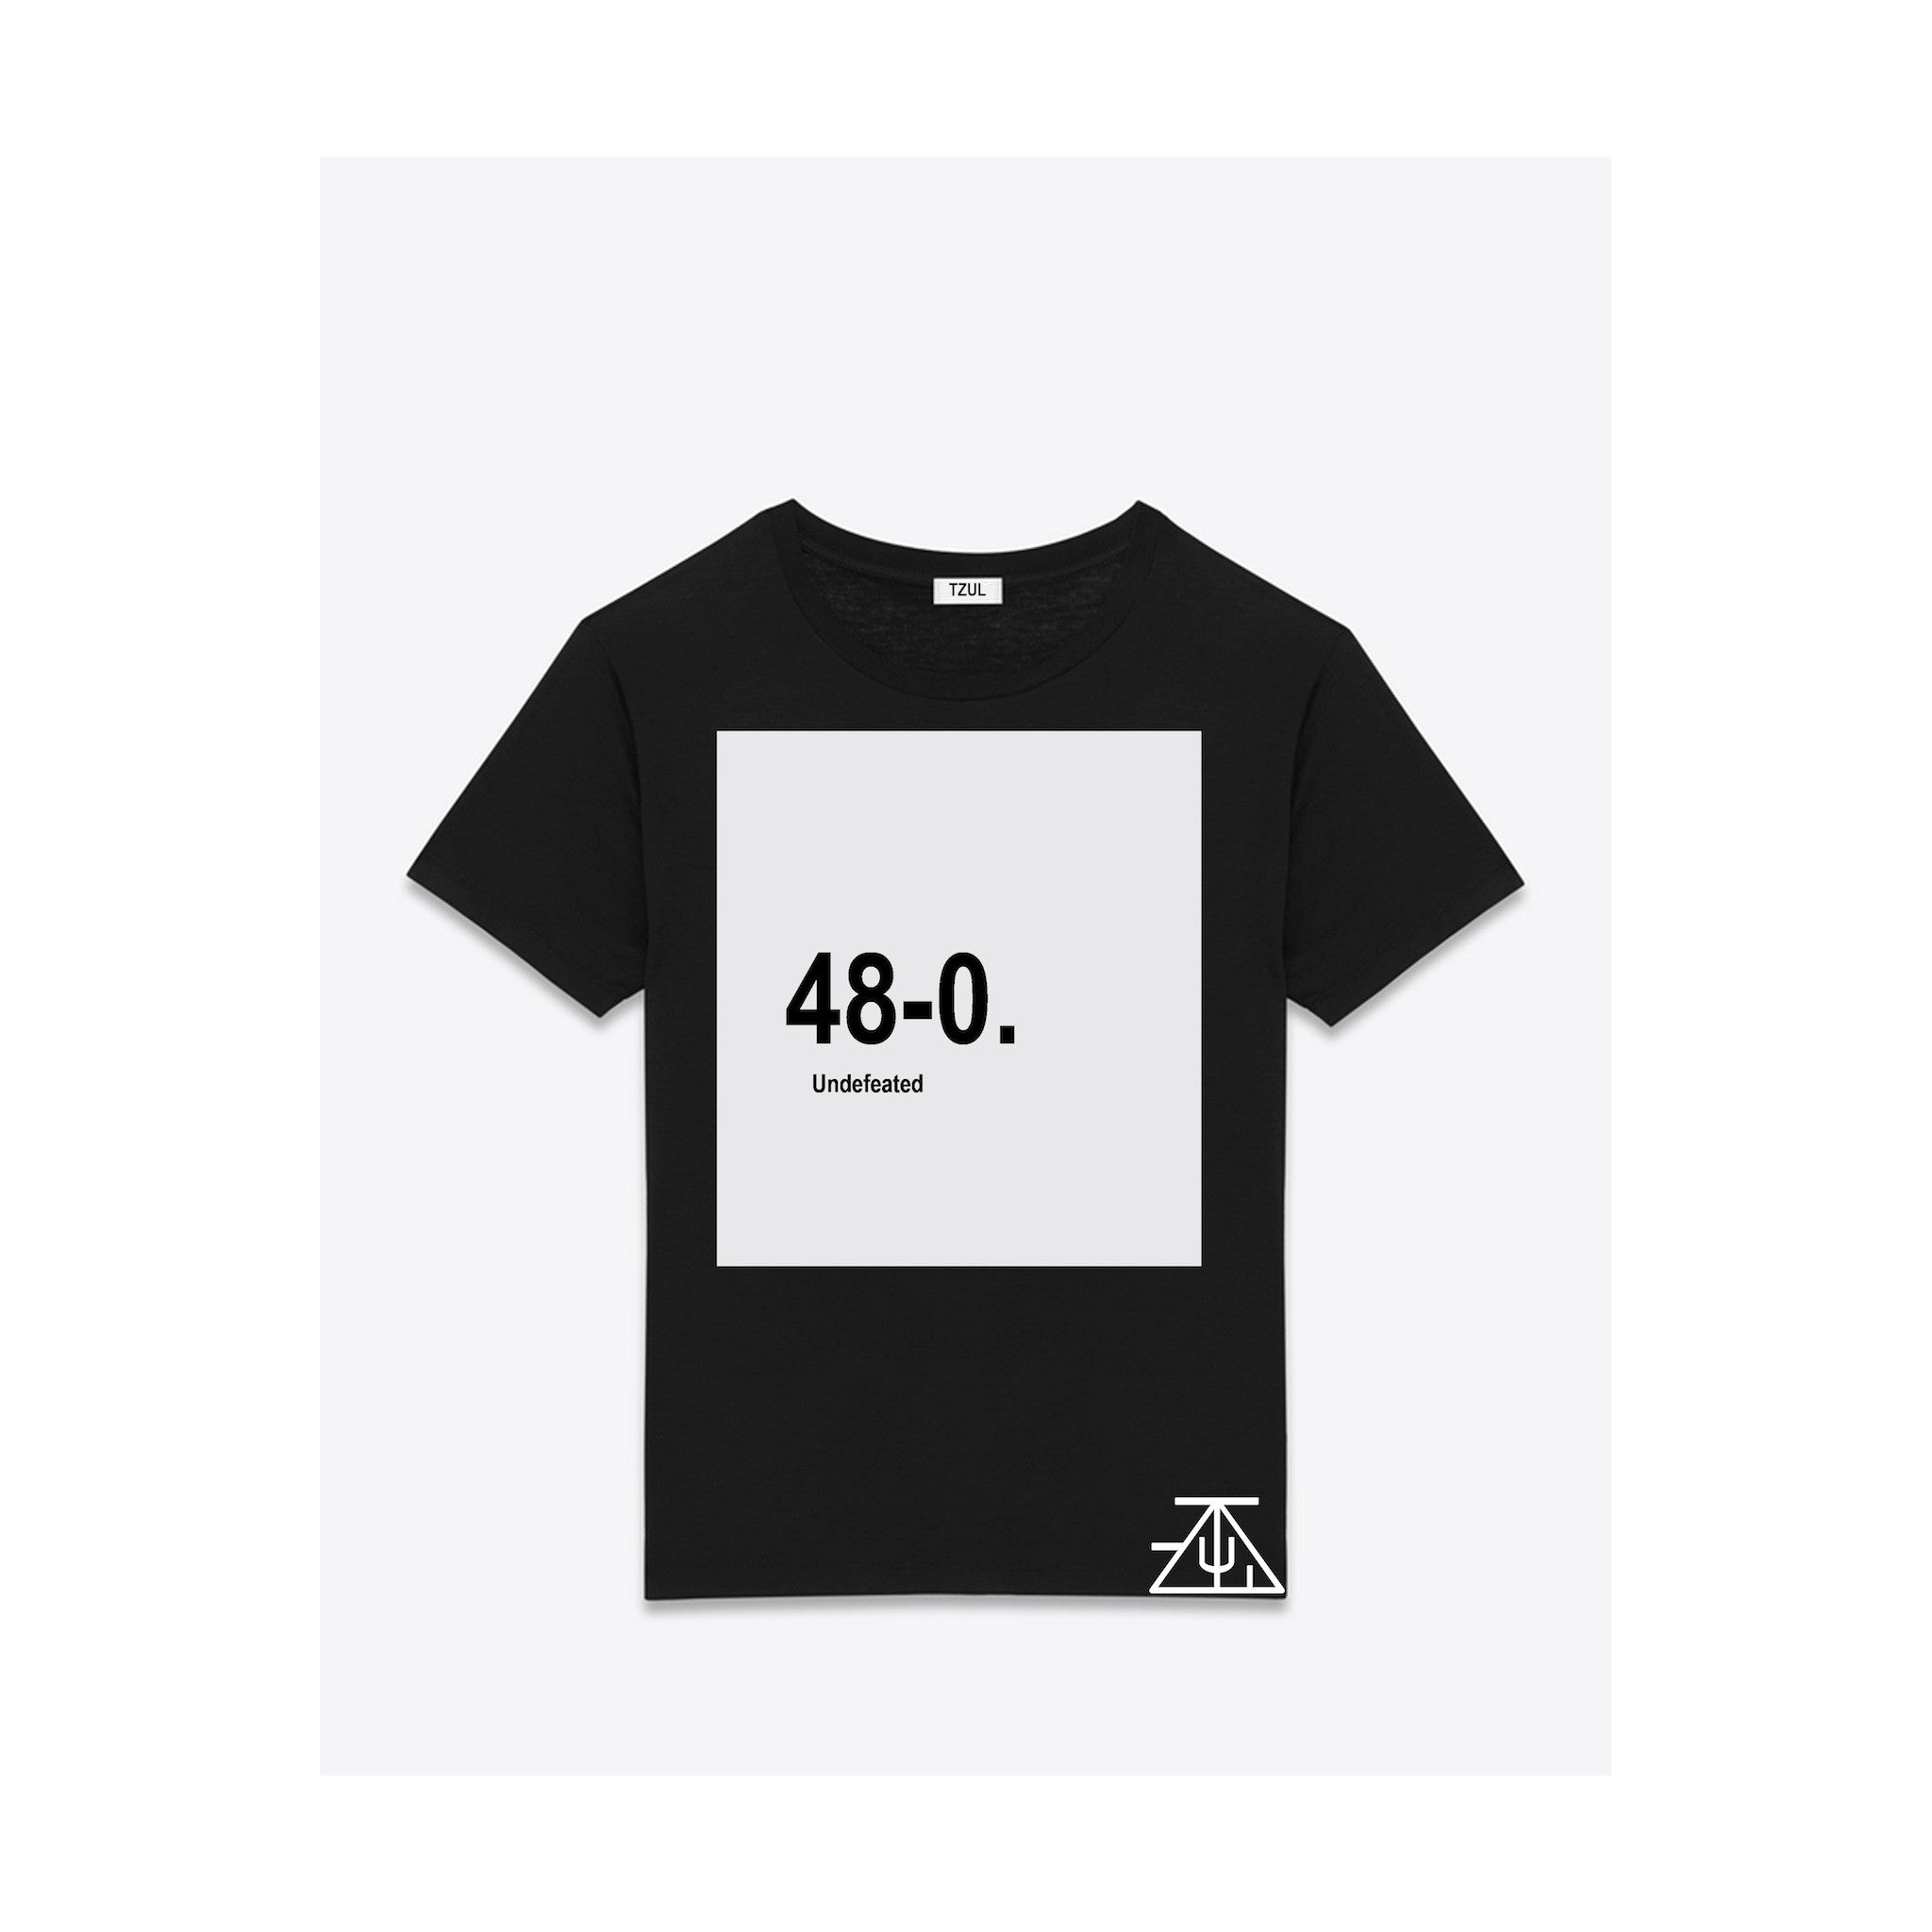 48 - 0. Undefeated T-Shirt